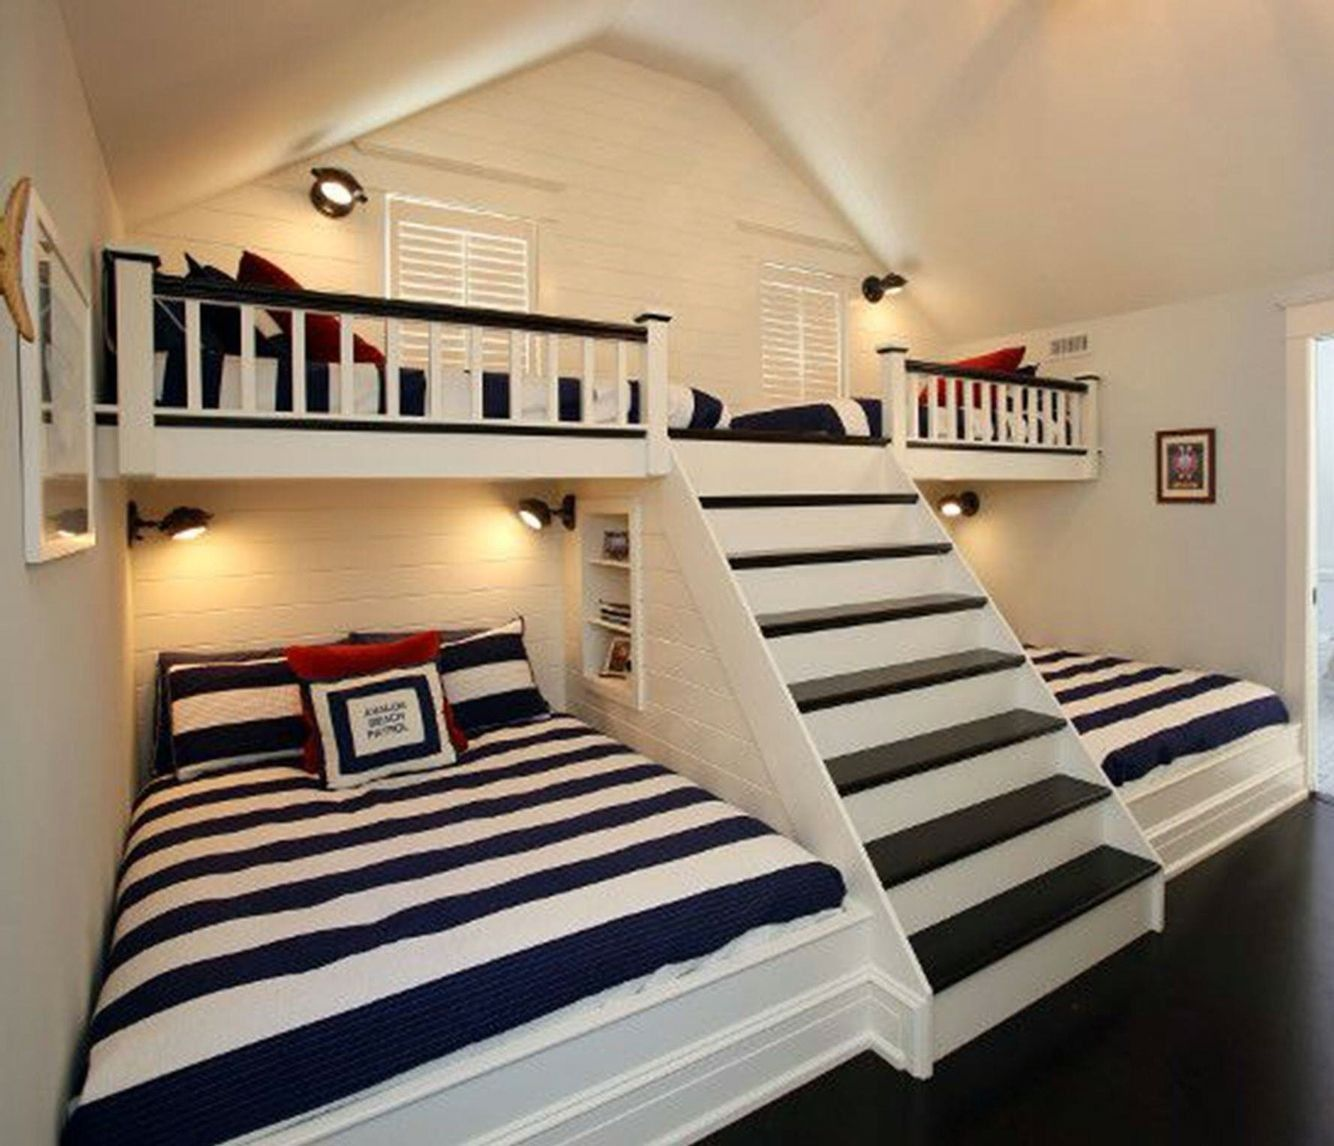 Small Lake House Decorating Ideas Inspirational Kids Room For Our Tiny House I Love The Semiprivate Separate Beds Of 25 Aw Bedroom Design Home Bunk Bed Designs